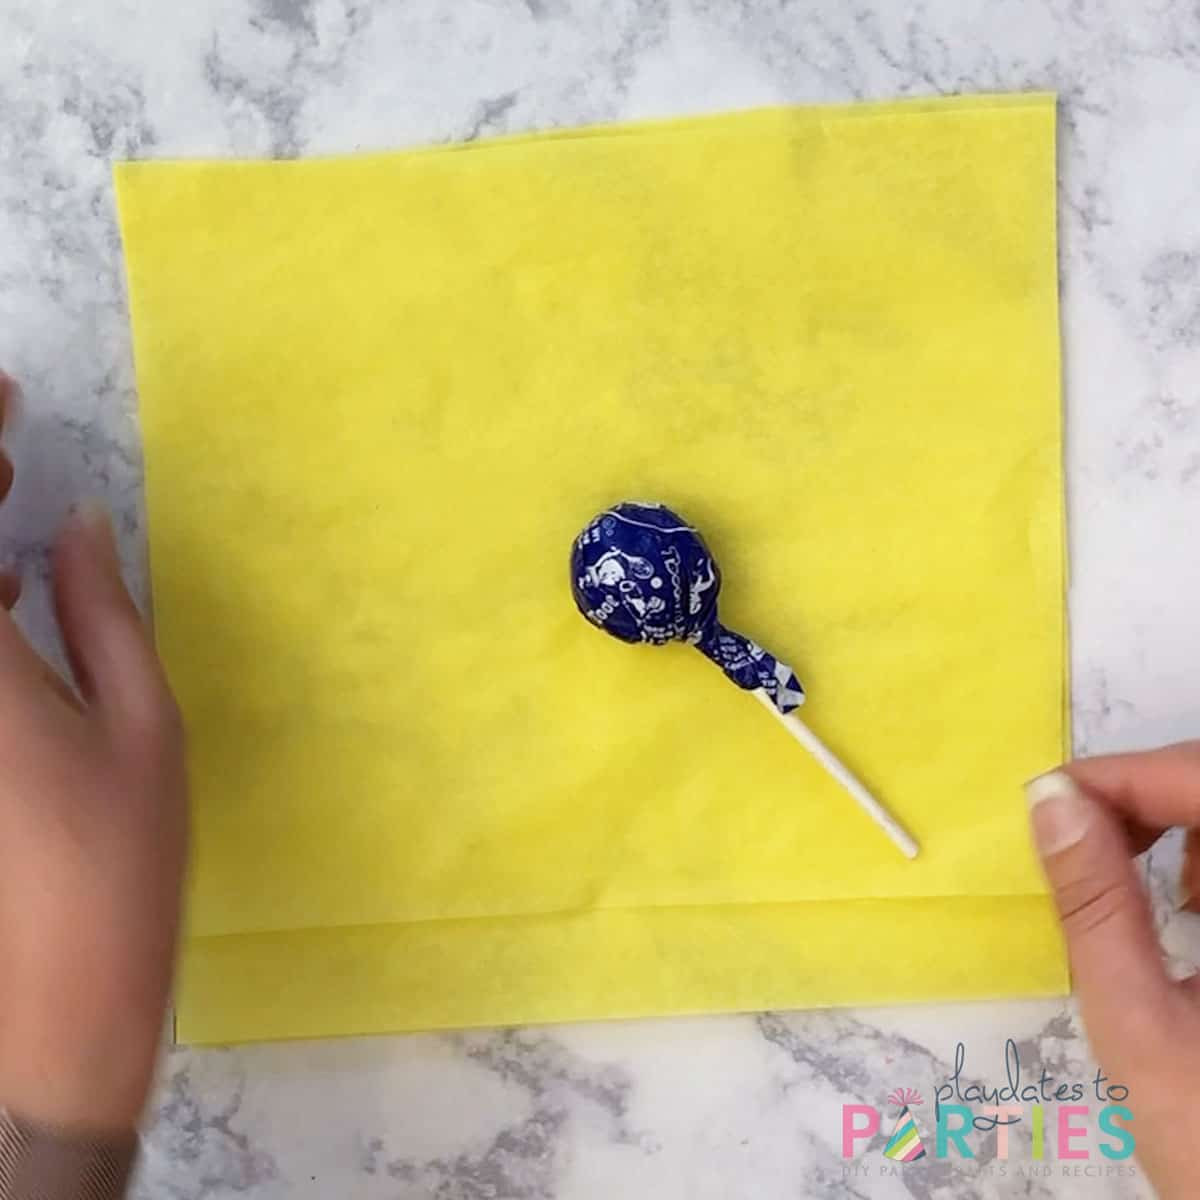 tootsie roll pop laying in the middle of square yellow tissue paper on a marble surface